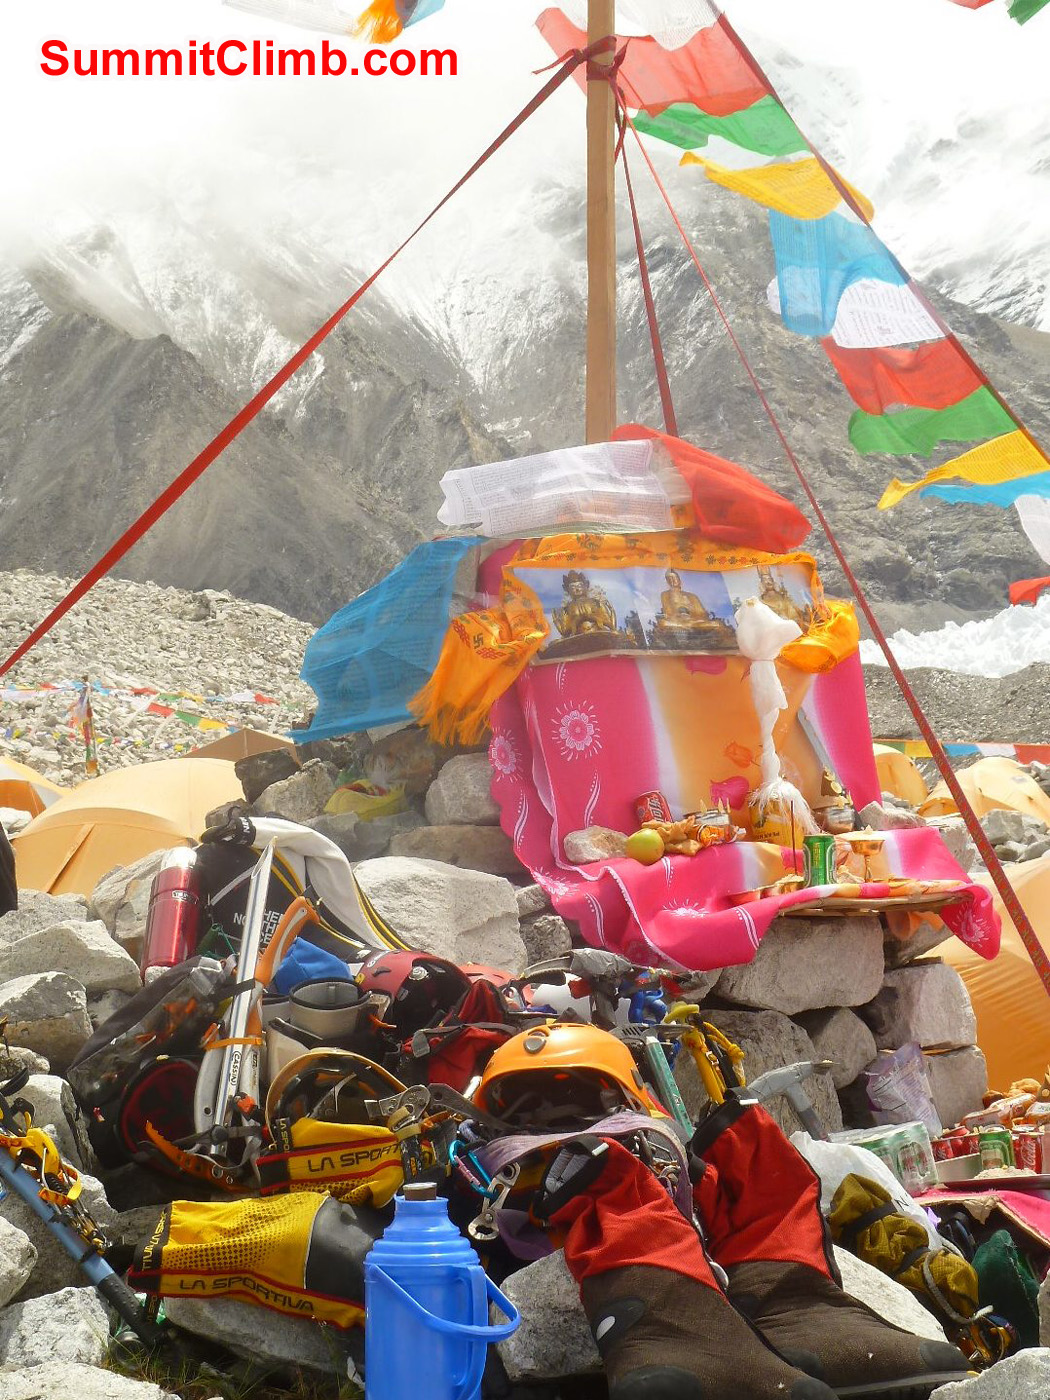 Puja Ceremony, blessing of the gear - Photo by Marina Cortes